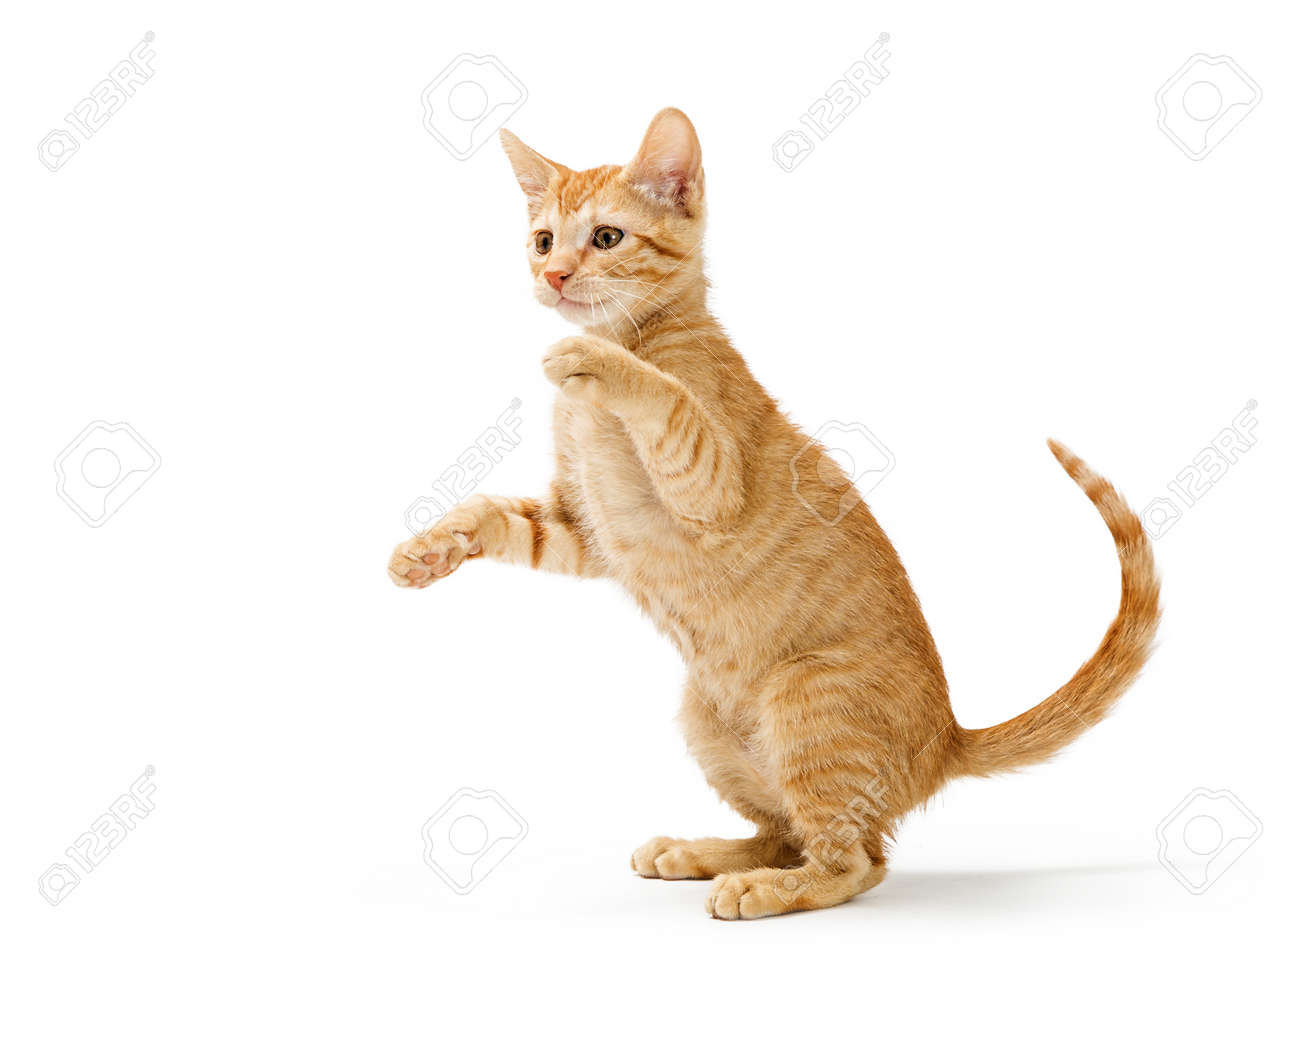 Cute frisky orange striped kitten sitting up raising arms to bat paws and play. Isolated on white. - 122778535